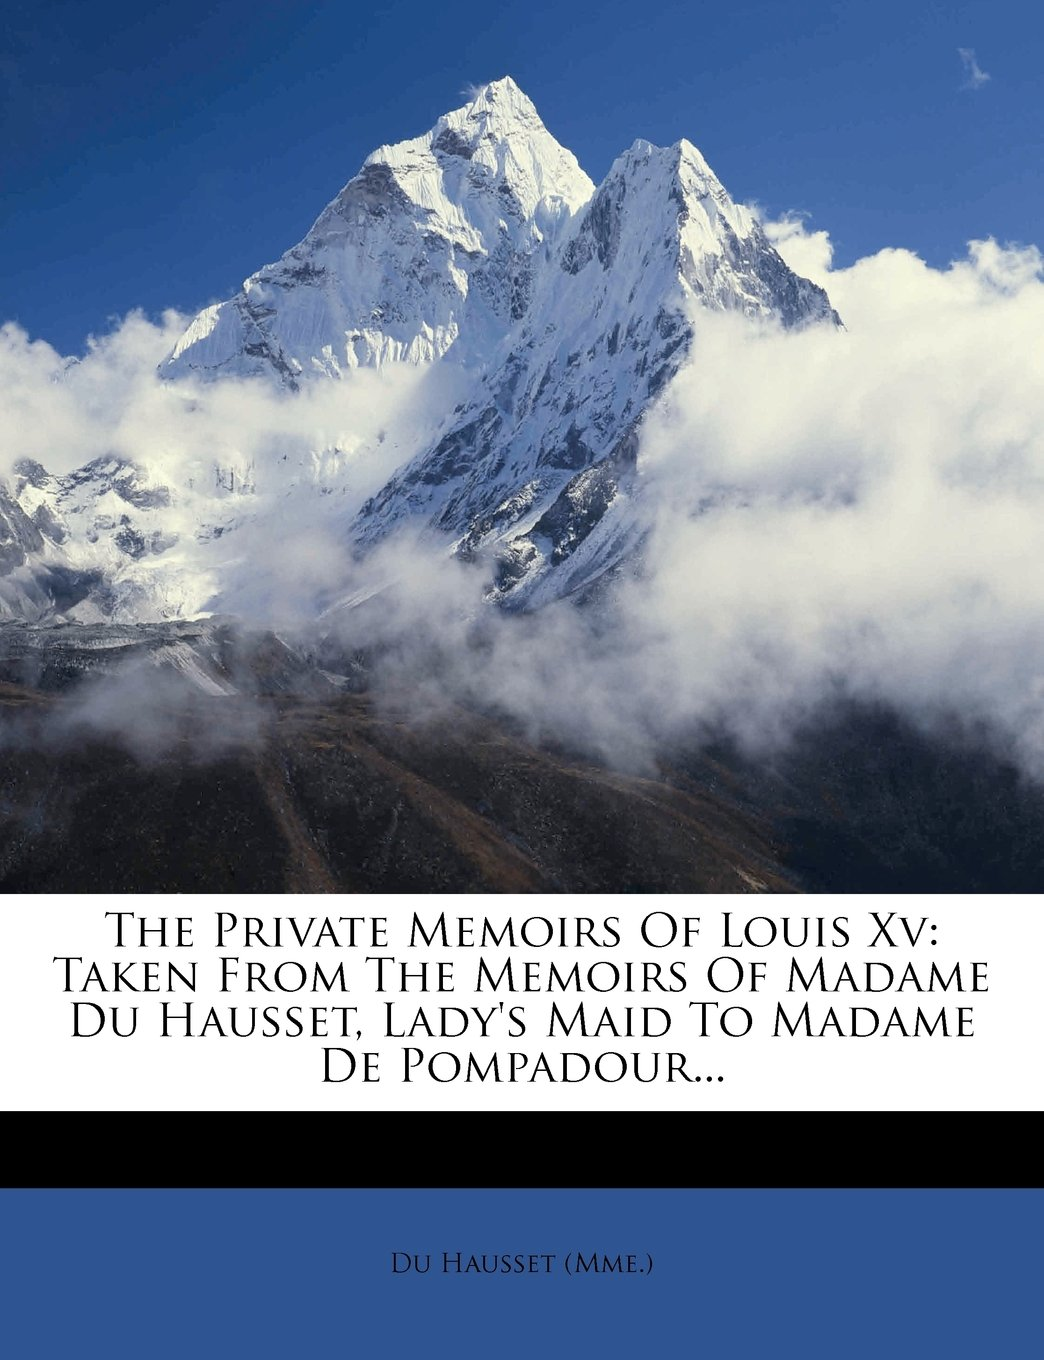 The Private Memoirs Of Louis Xv: Taken From The Memoirs Of Madame Du Hausset, Lady's Maid To Madame De Pompadour... PDF